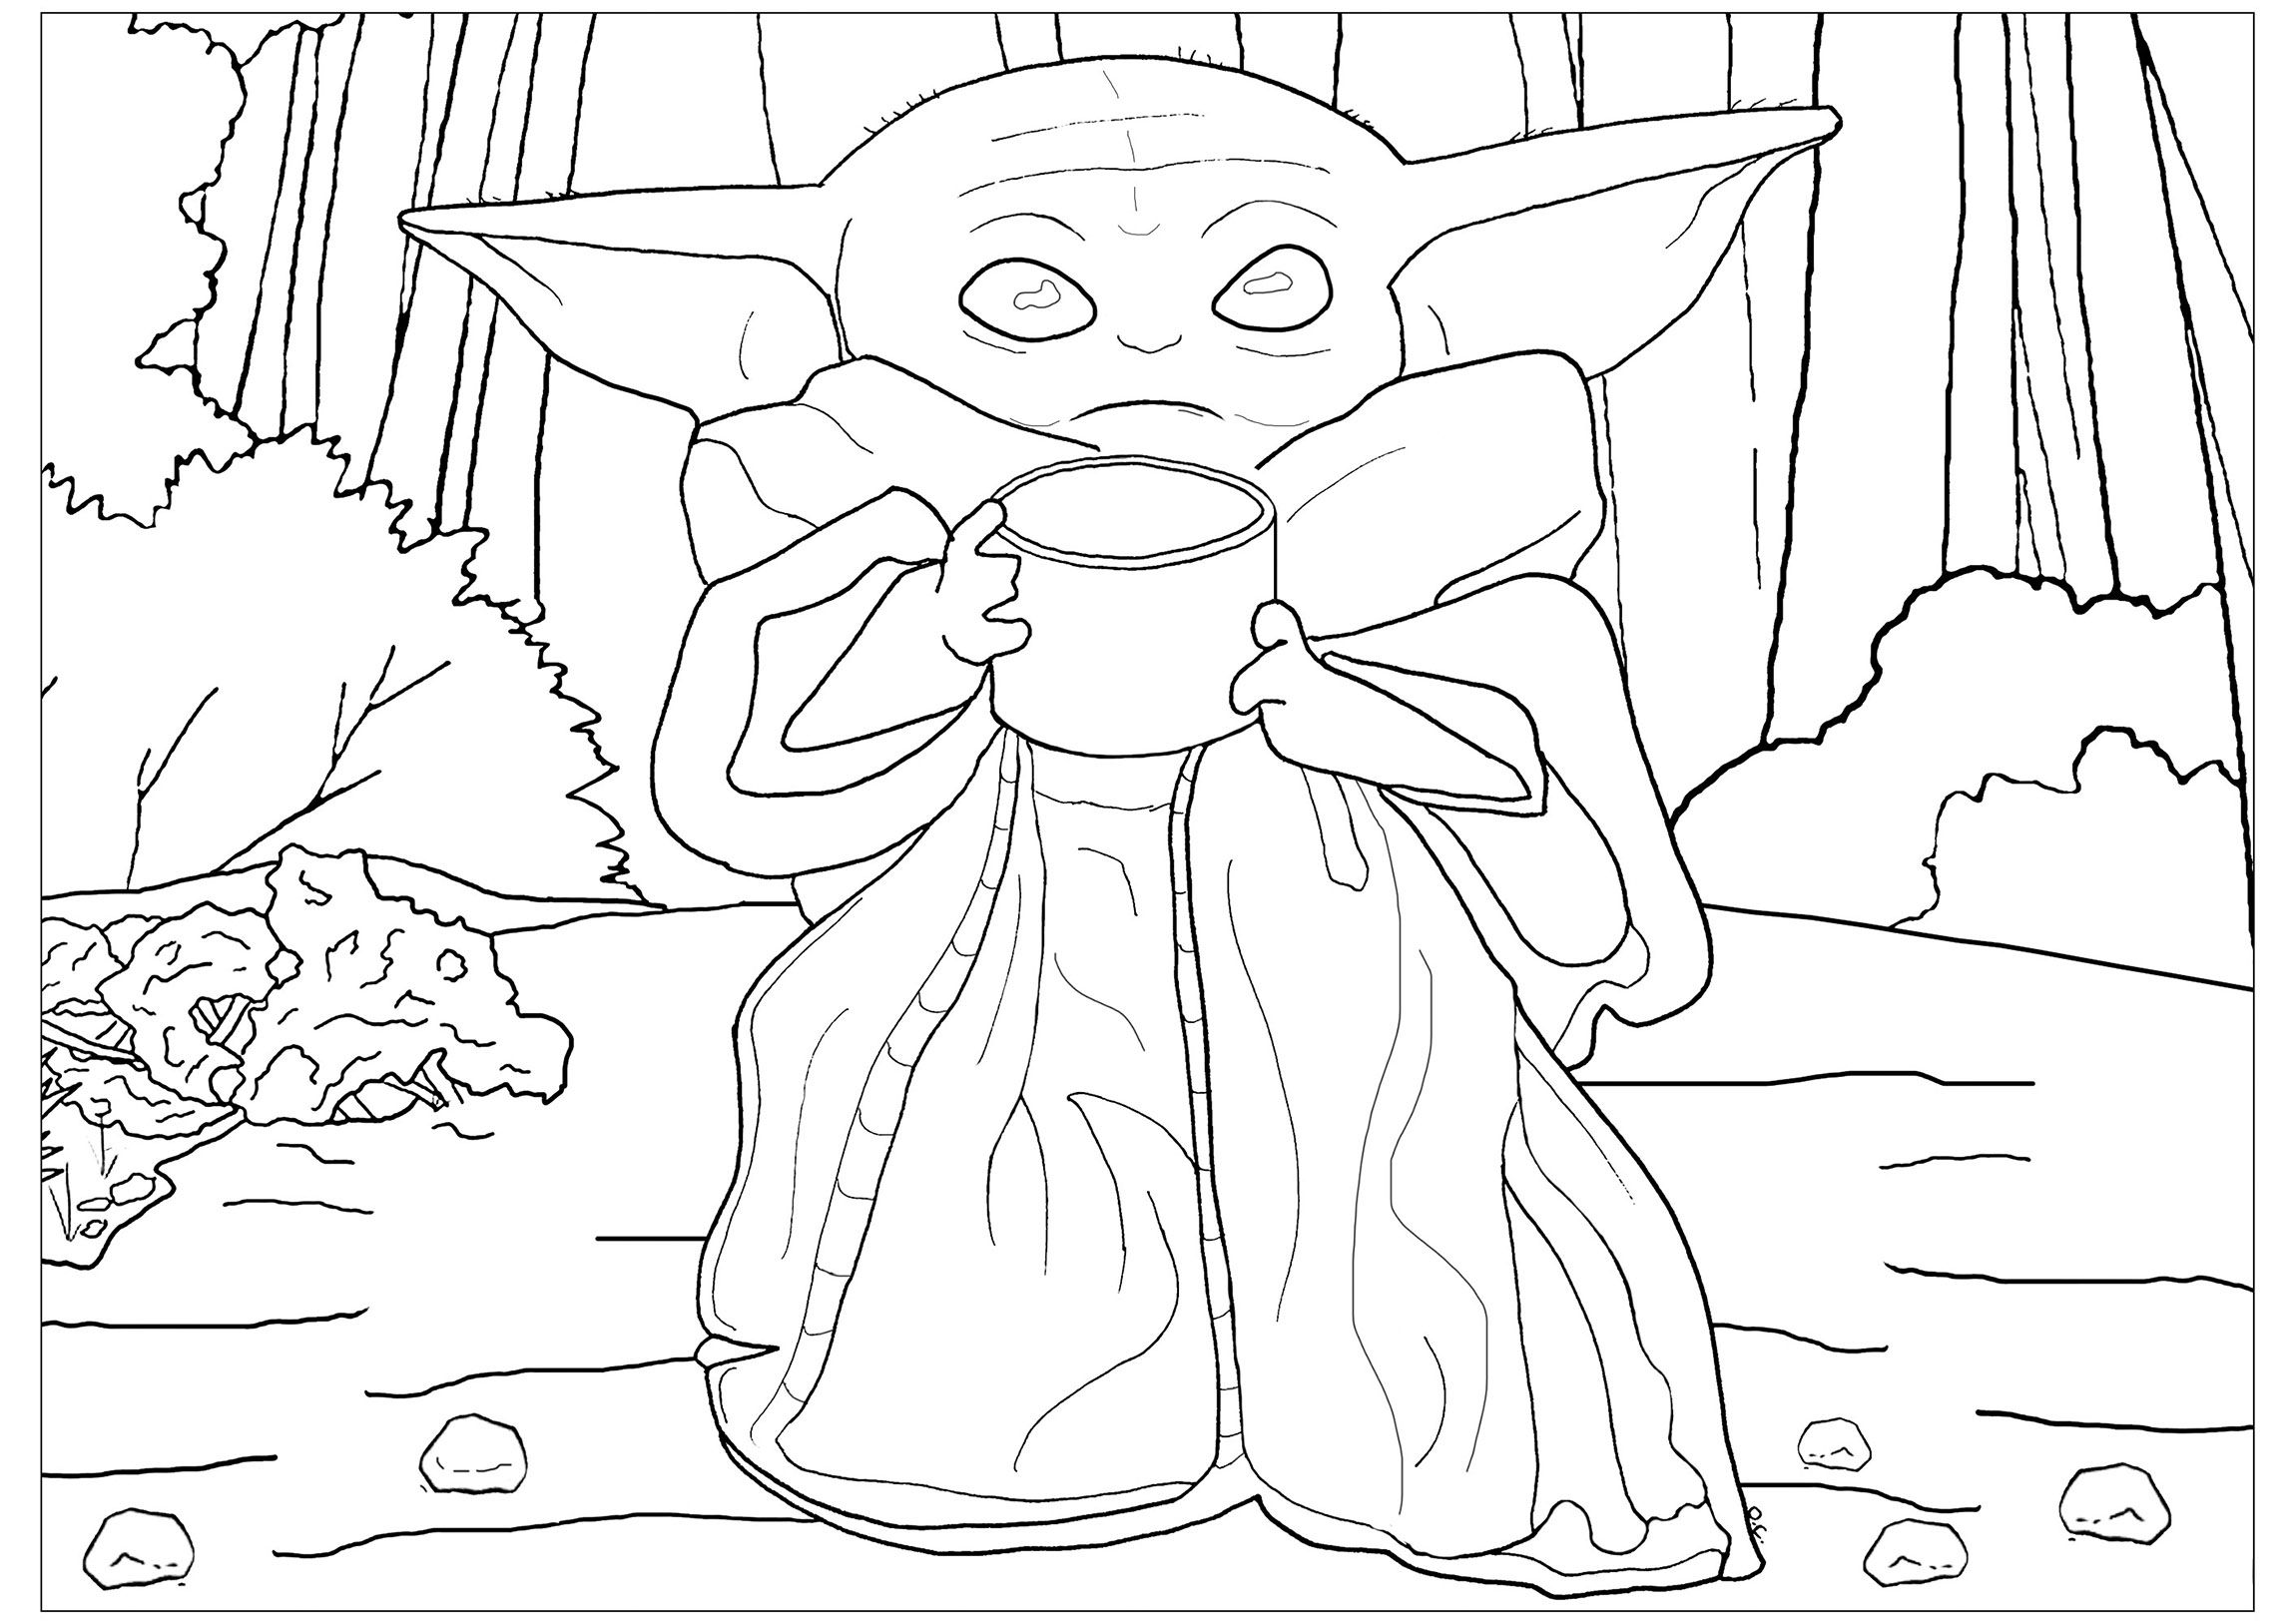 Pin On Superheros Coloring Pages